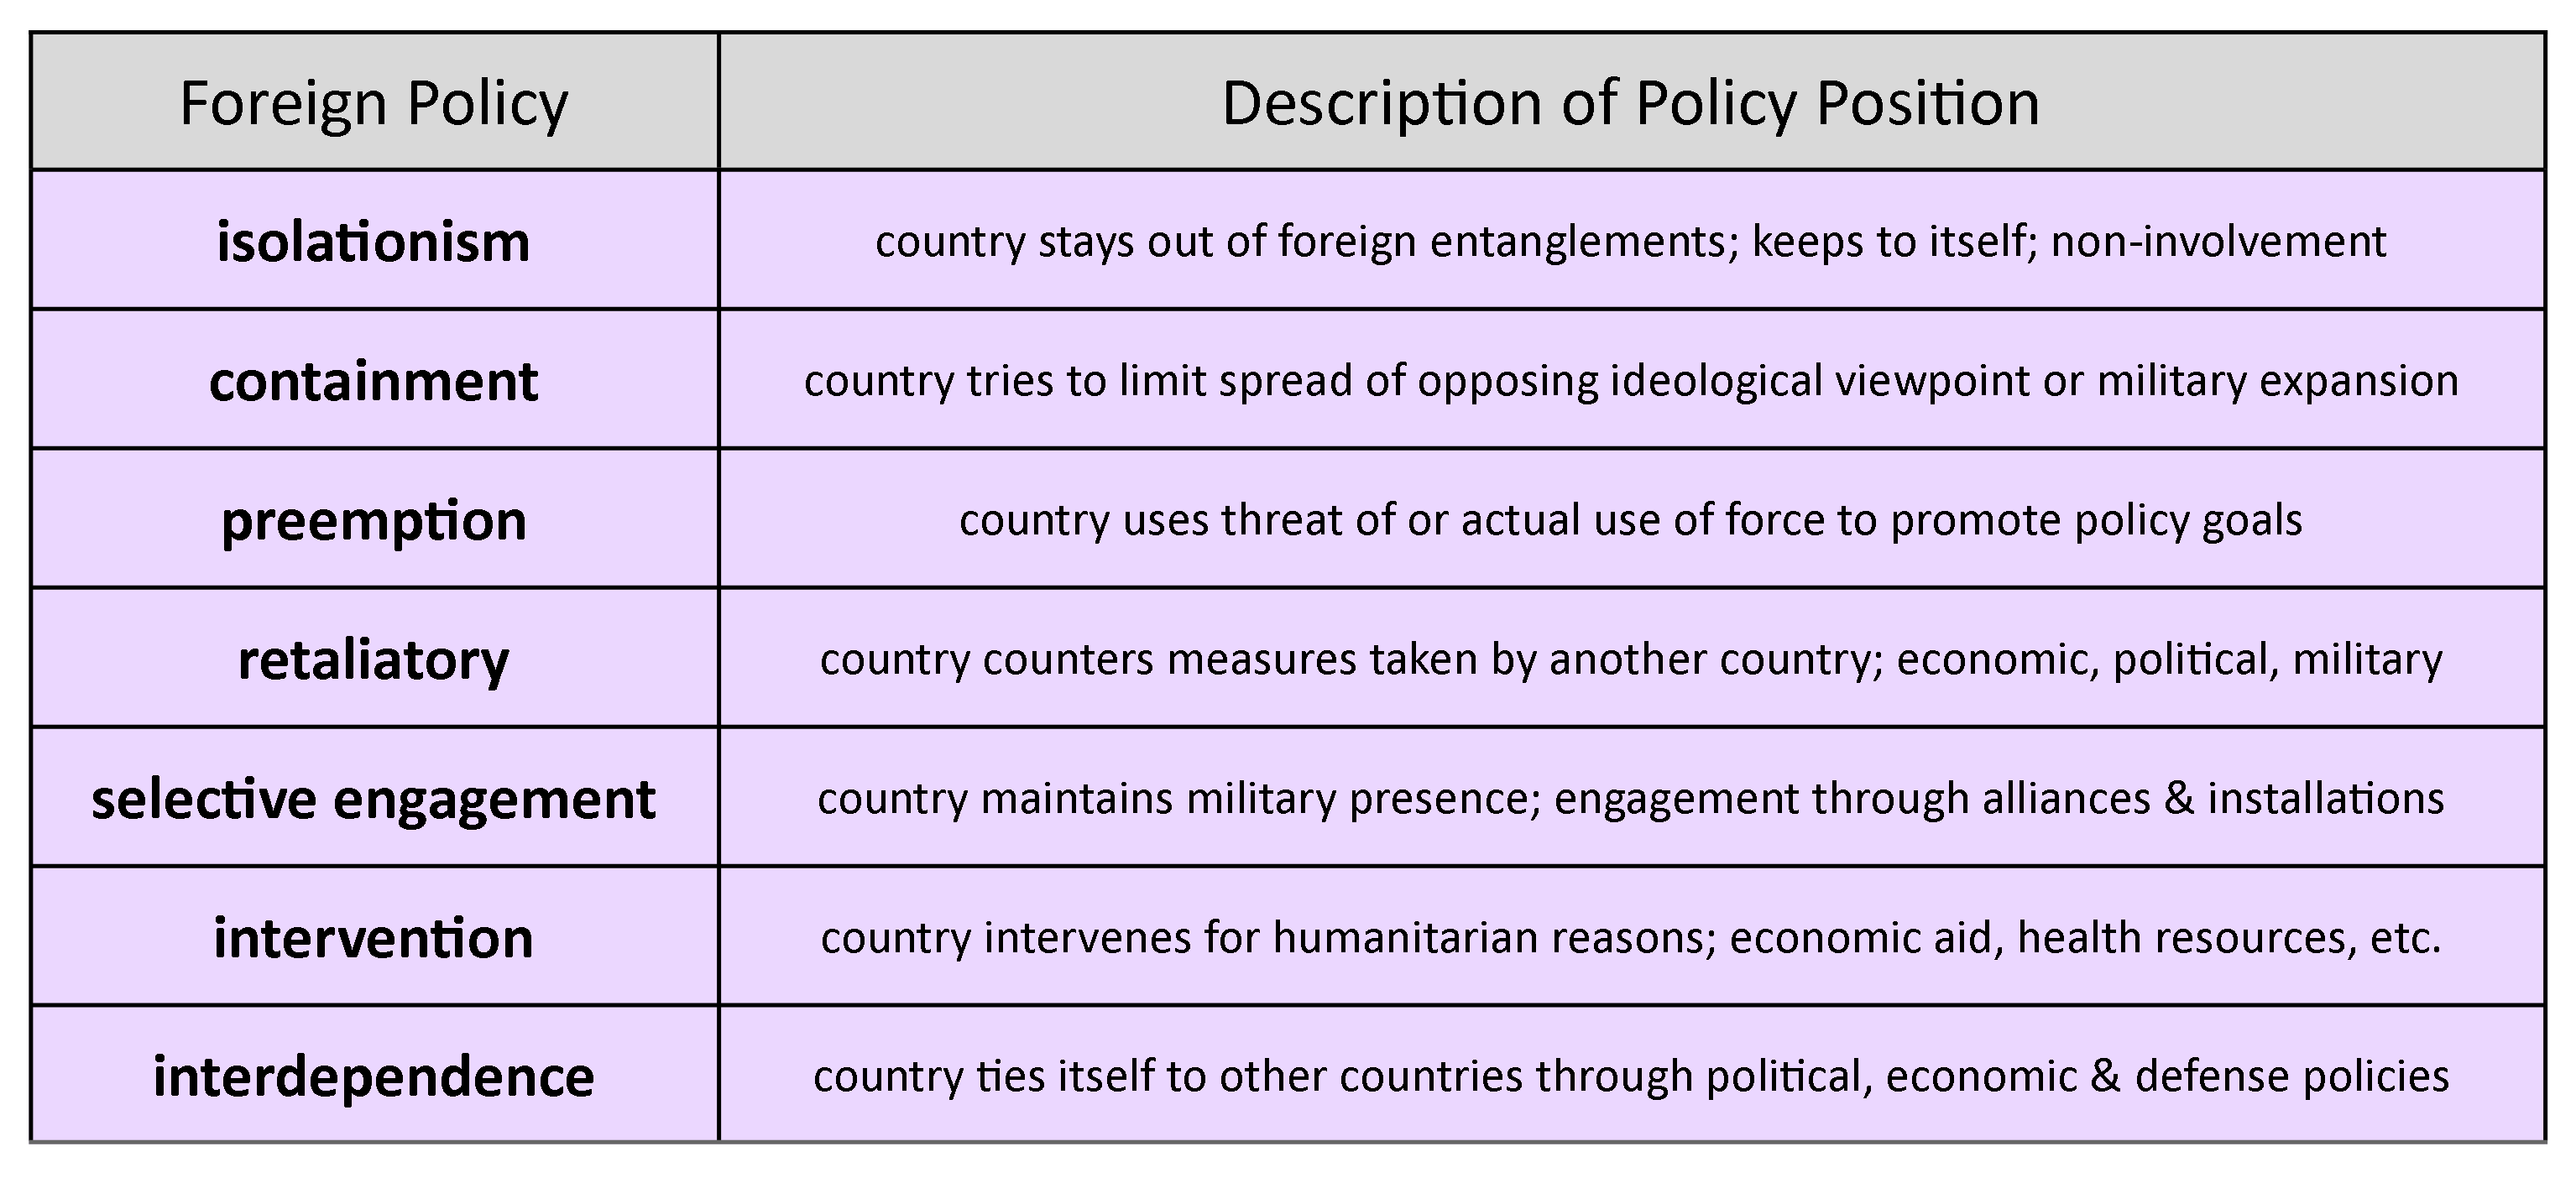 Chart shows different foreign policy positions including isolationism, containment, preemption, retaliatory, selective engagement, intervention, and interdependence.